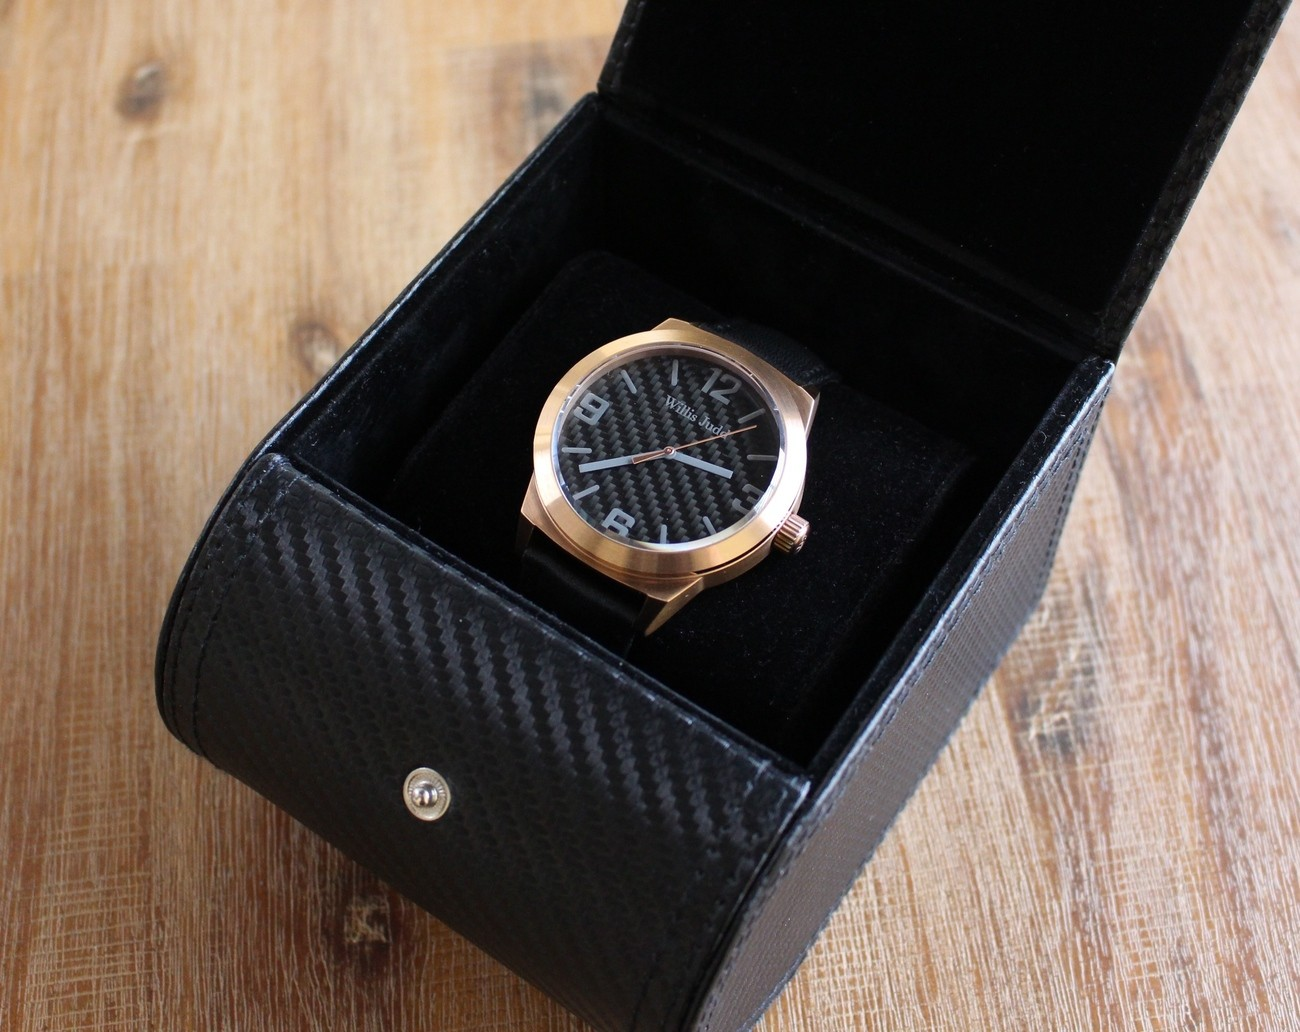 Carbon+Fiber+Watch+Made+Affordable+%26%238211%3B+Designed+In+Australia